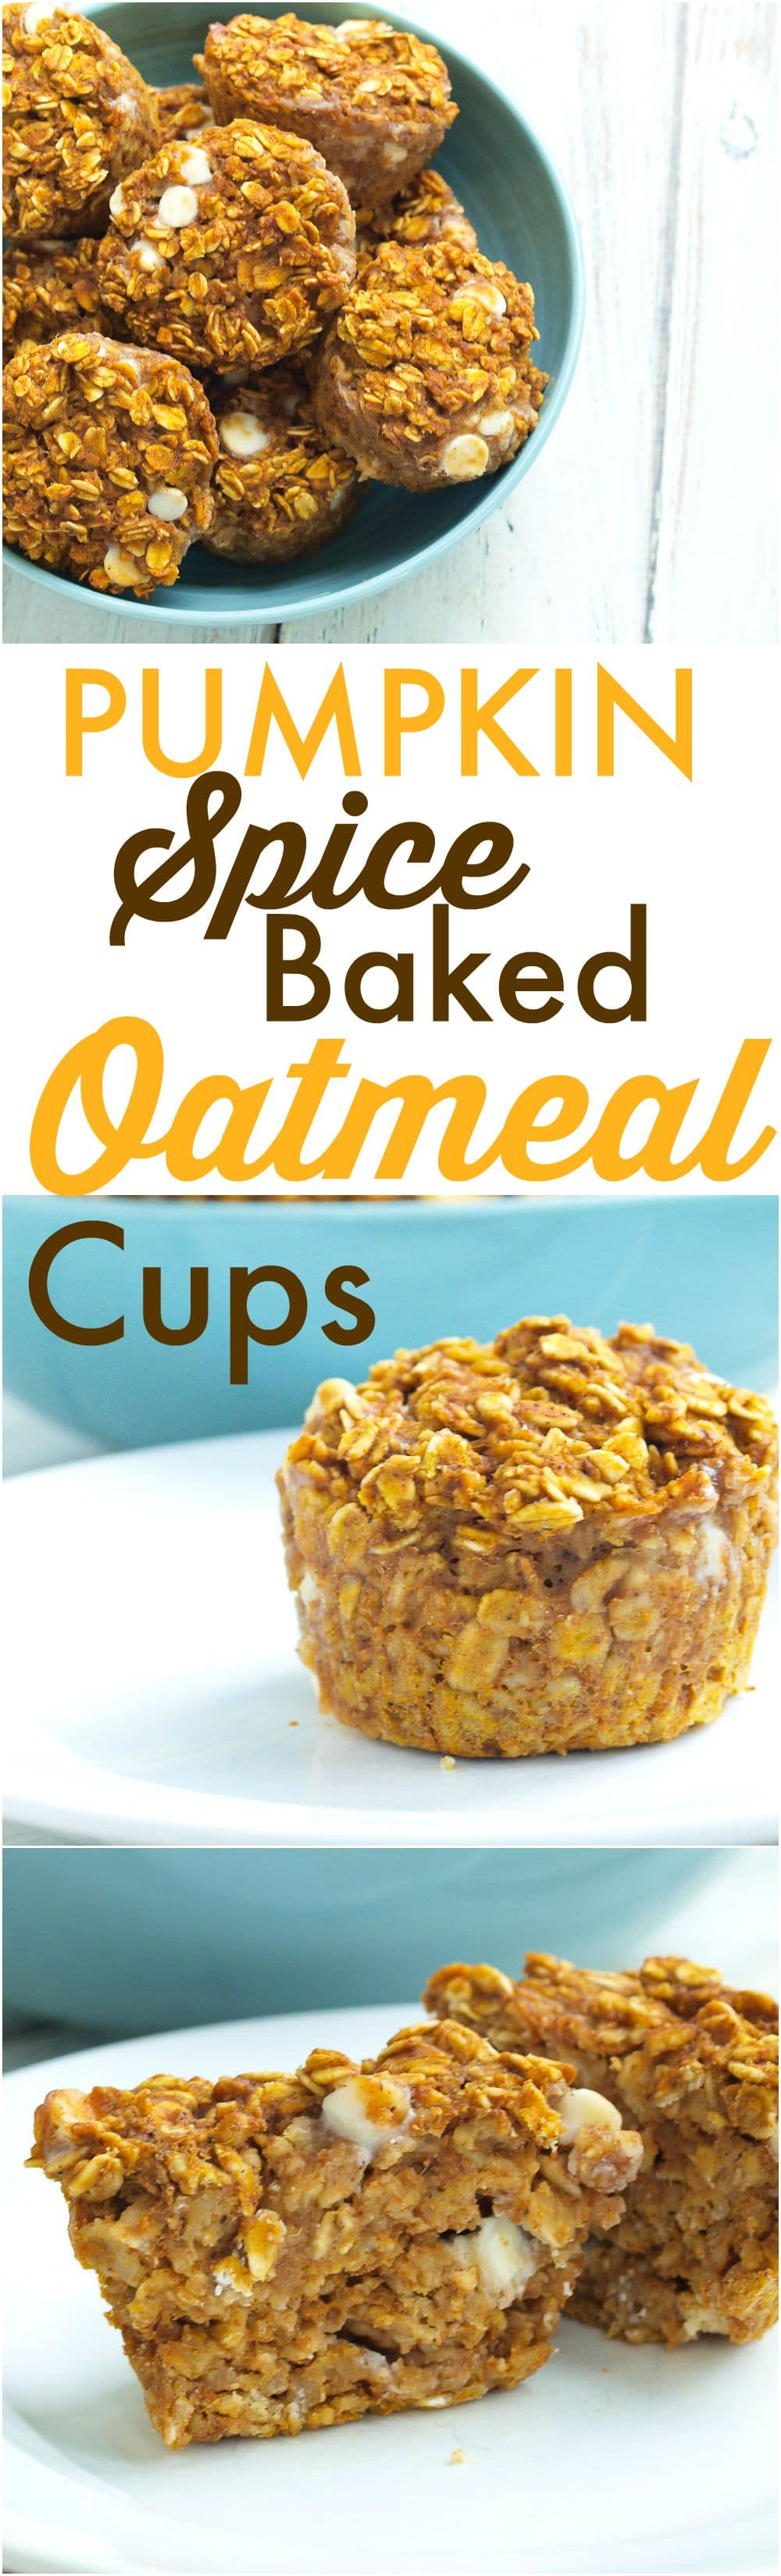 These Pumpkin Spice Baked Oatmeal cups are a perfect portable, breakfast to go idea! It's a healthy recipe with 100% whole grains and low sugar. The flavor is perfect for fall, but I will eat these all year.